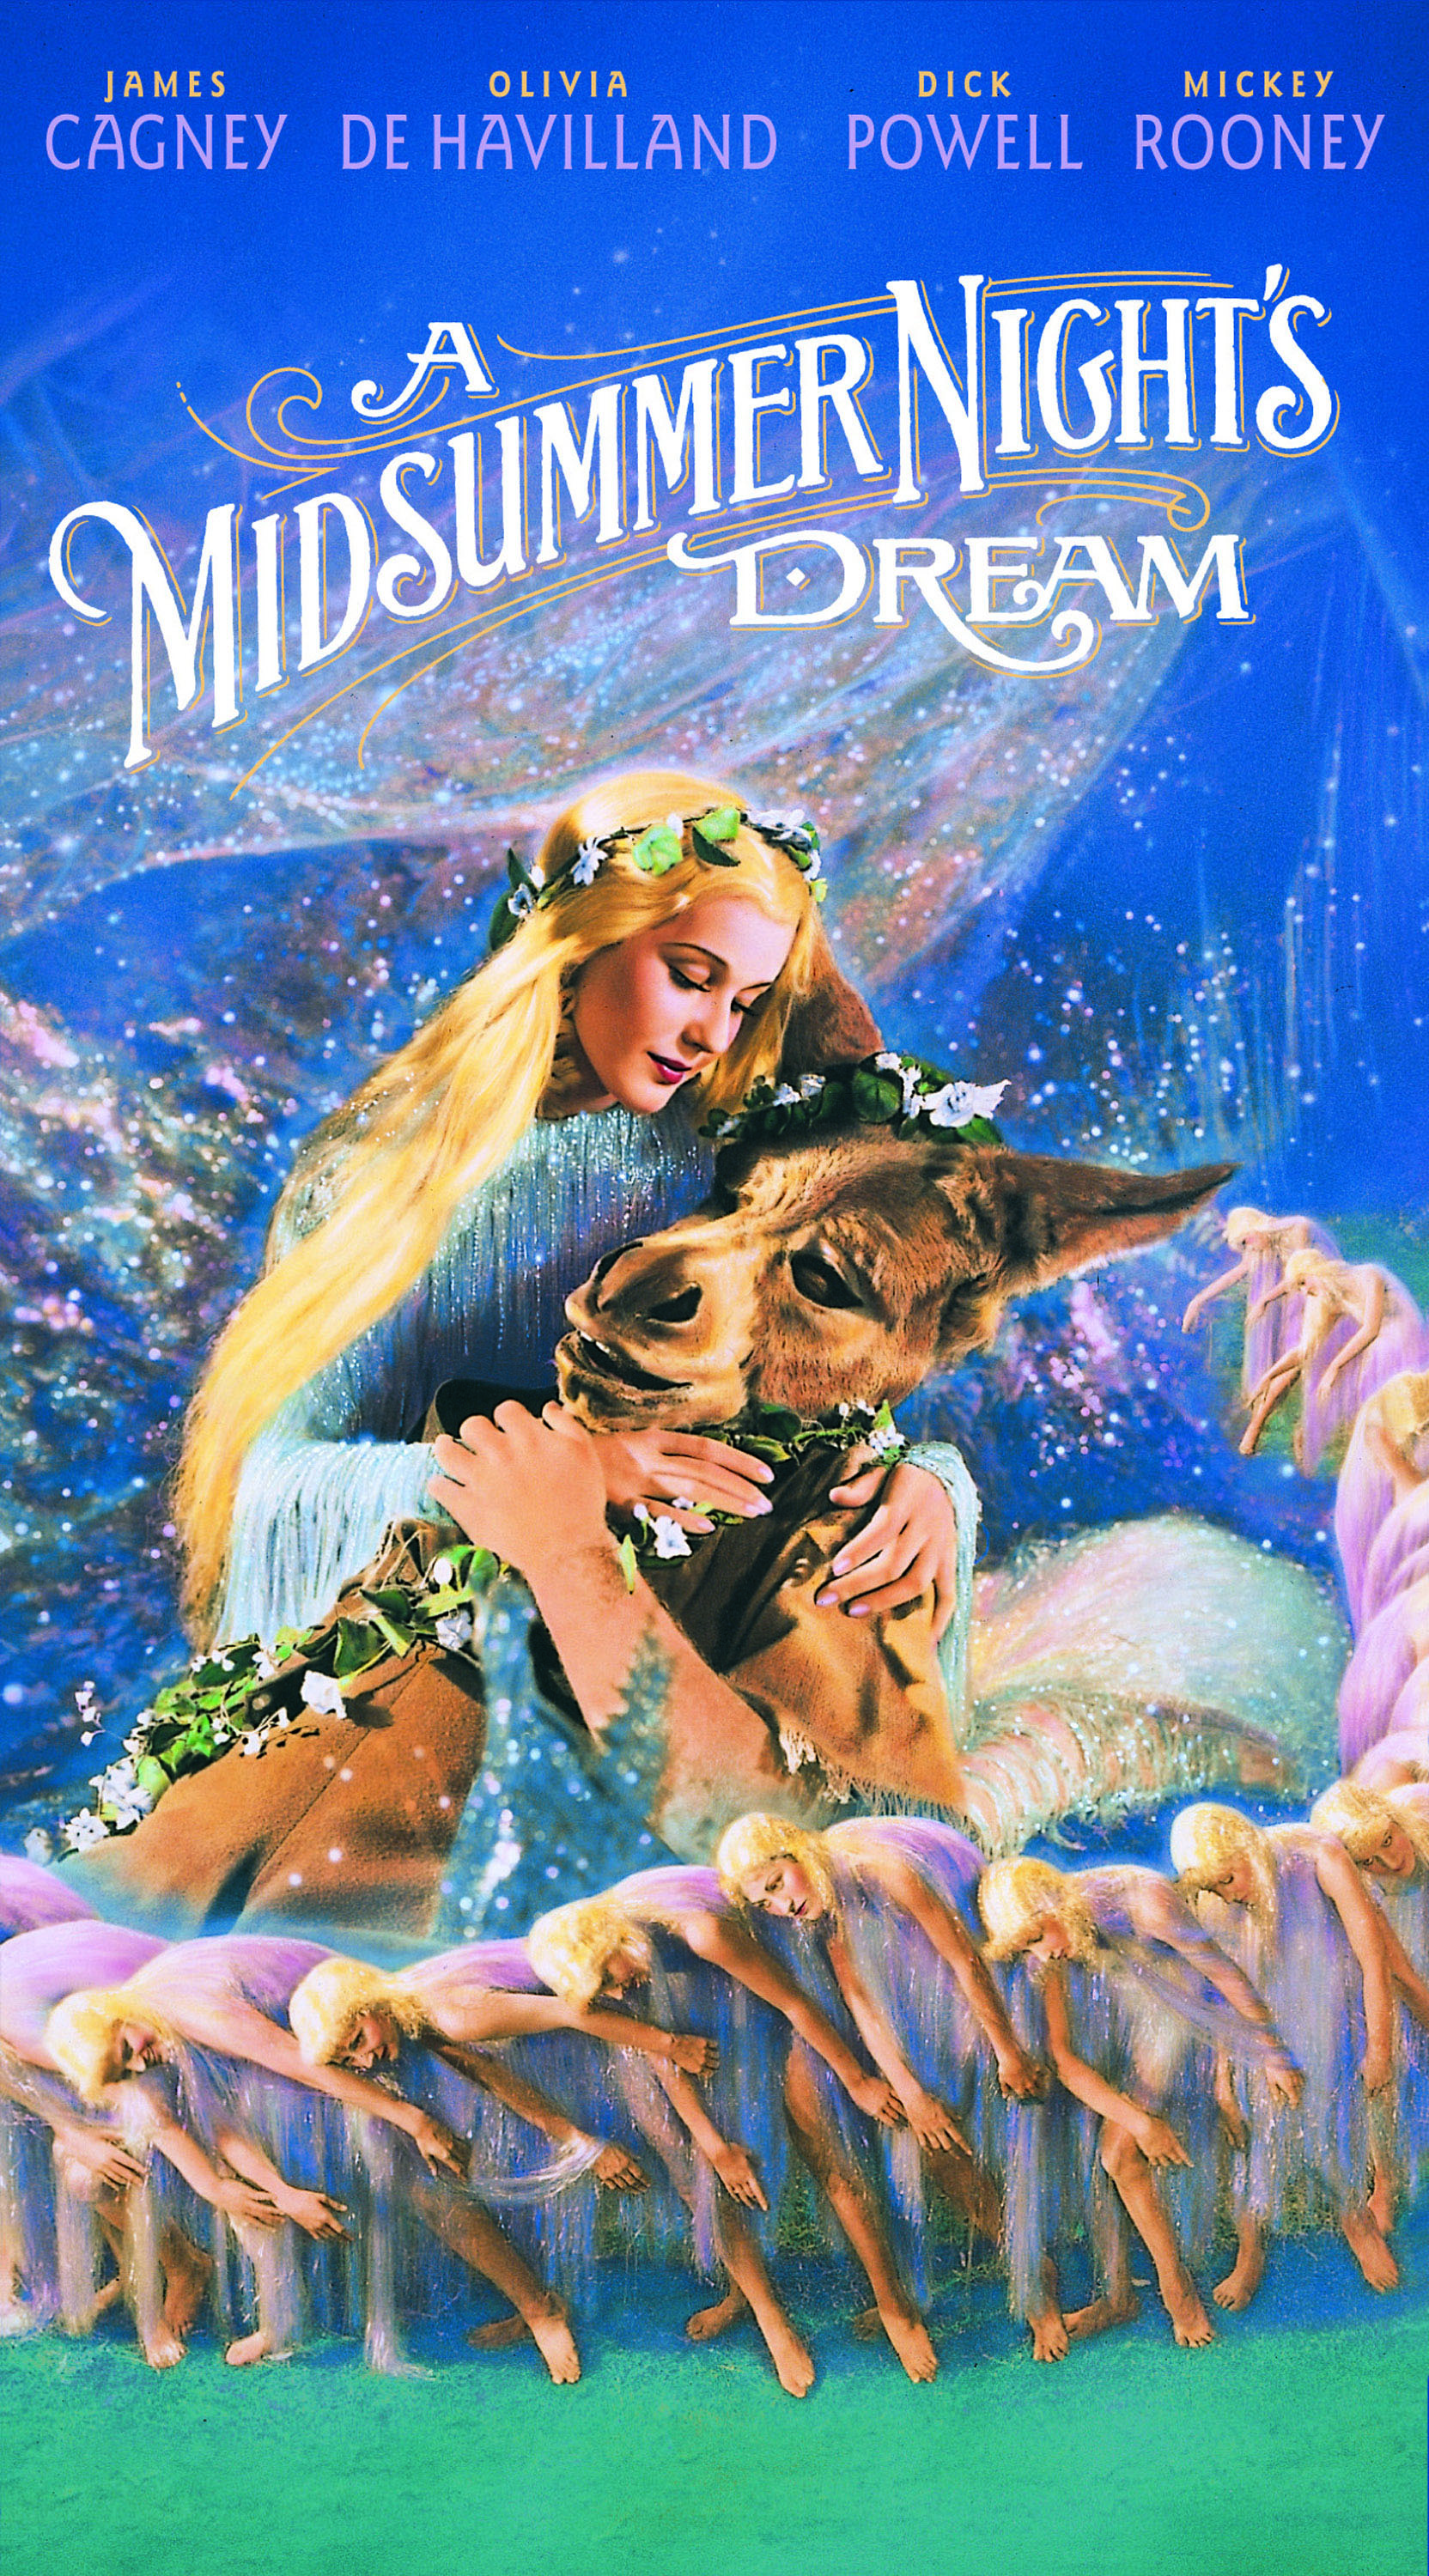 essay questions on a midsummer nights dream A midsummer night's dream lesson plans include daily lessons, fun activities, essay topics, test/quiz questions, and more everything you need to teach a midsummer night's dream.